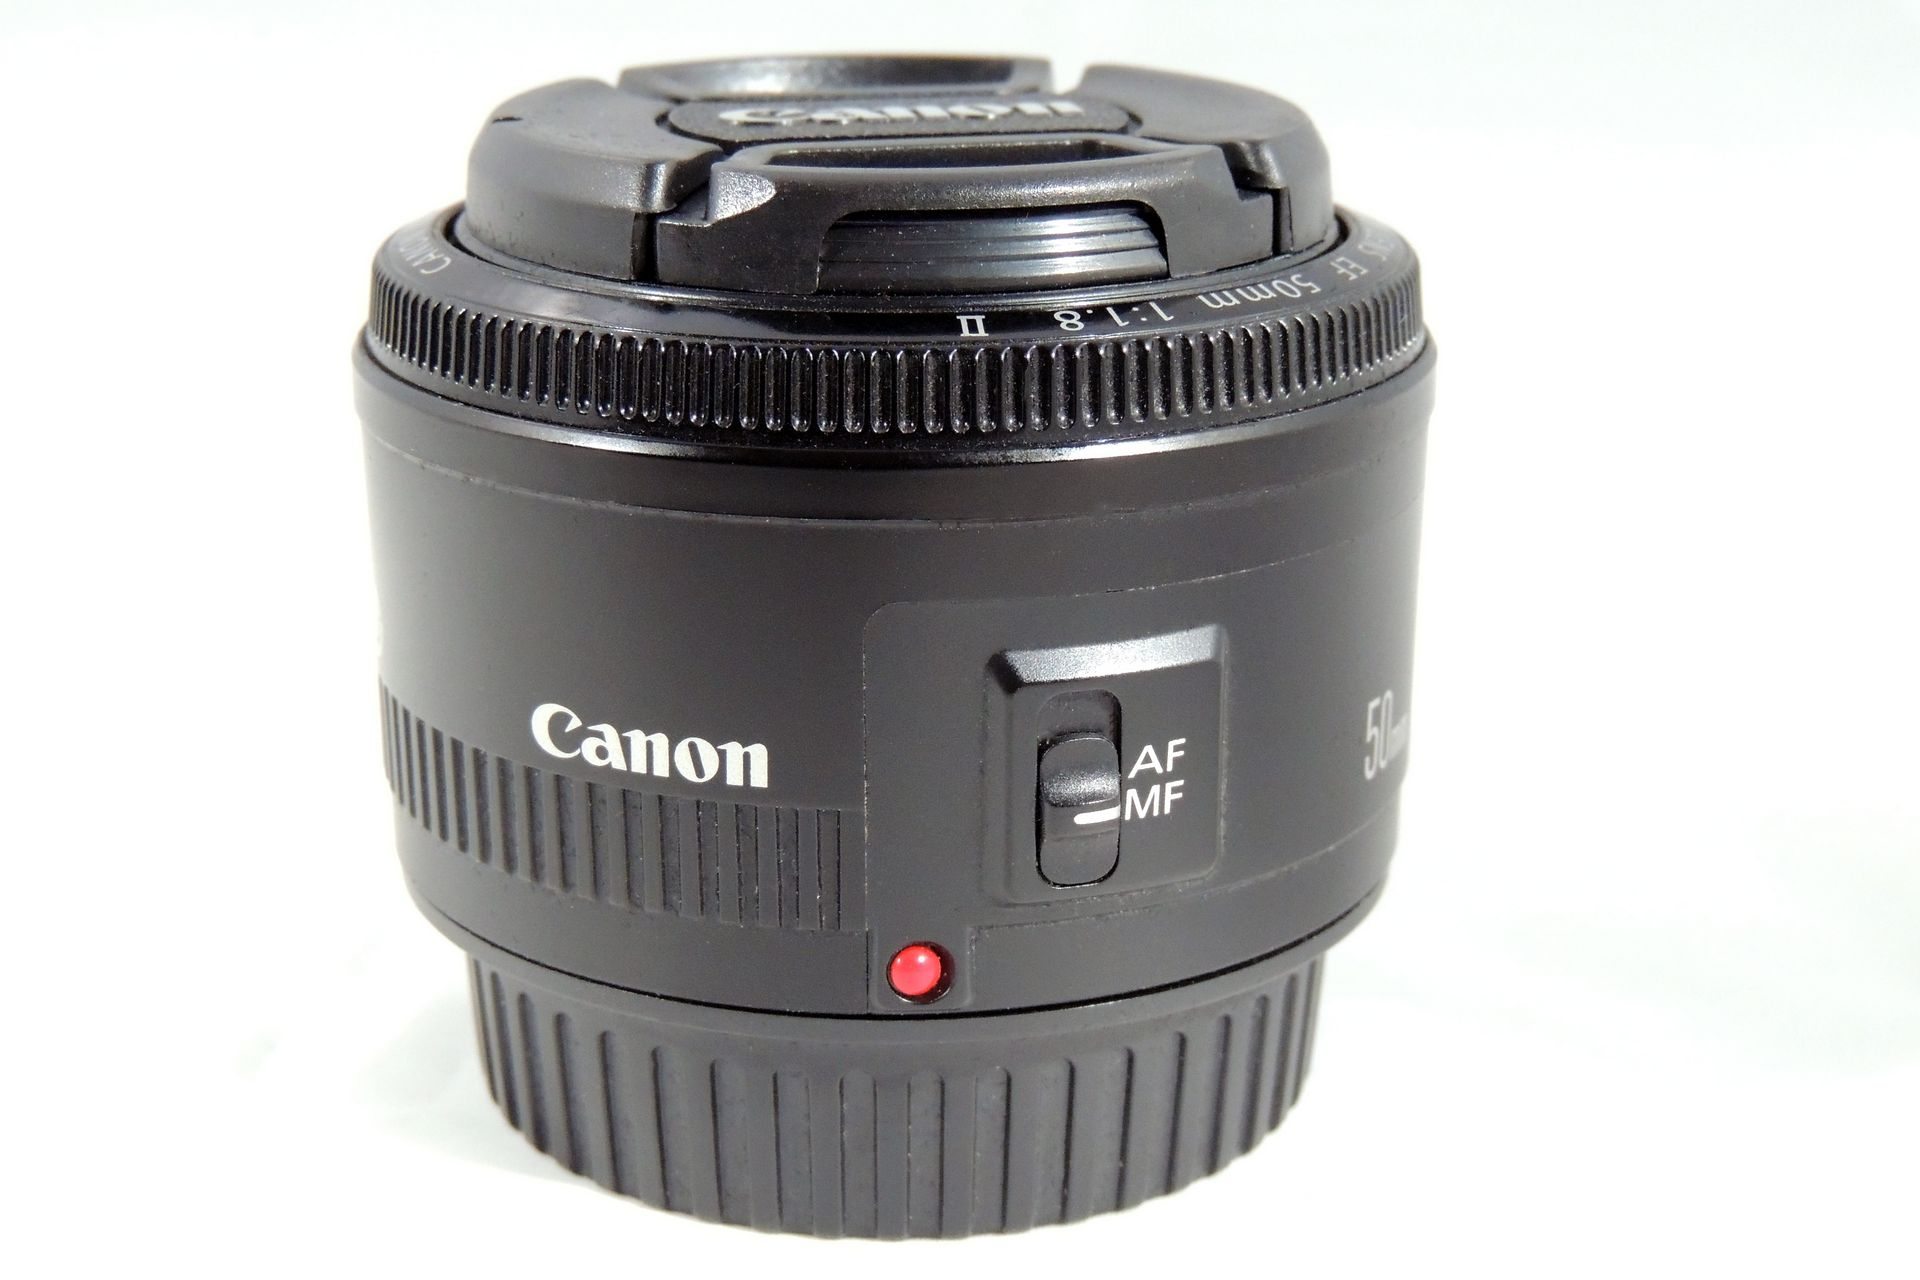 CANON EF 50 mm f/1.8 LENS